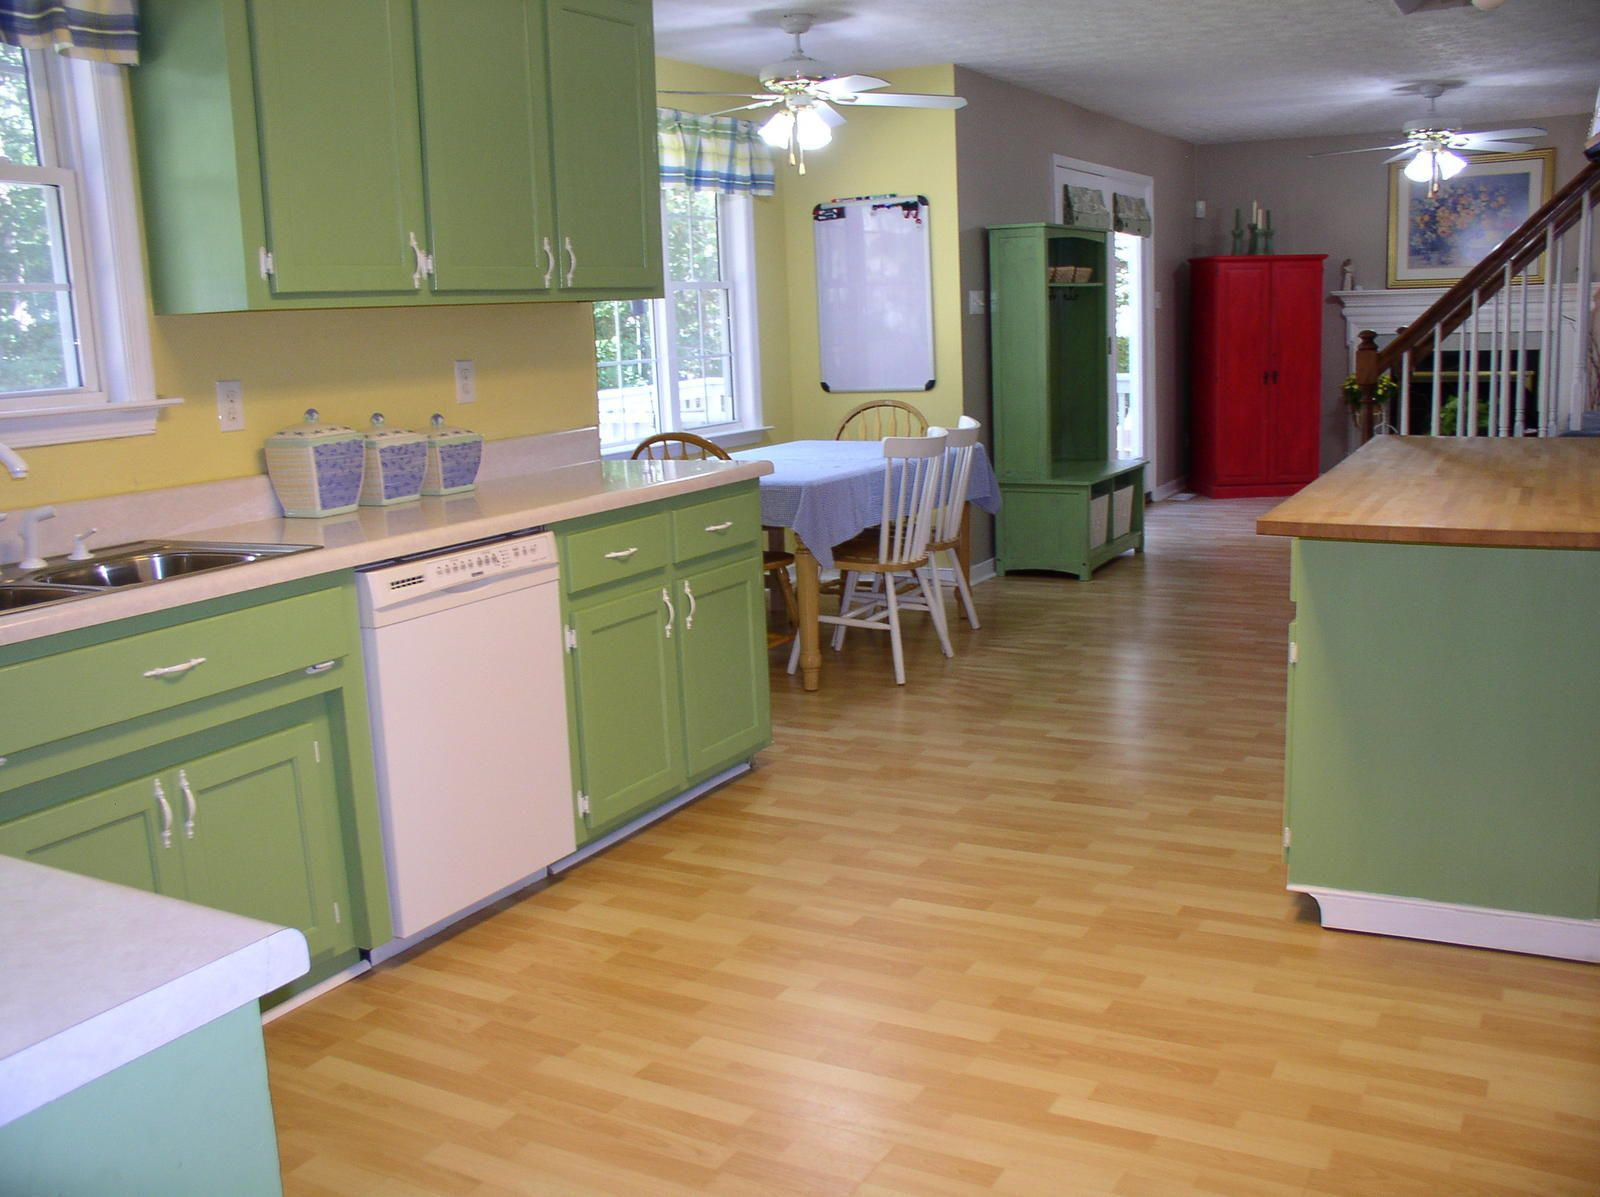 Vintage Queen Anne Kitchen Cabinets Green And Cream Google Search Hidup Sehat